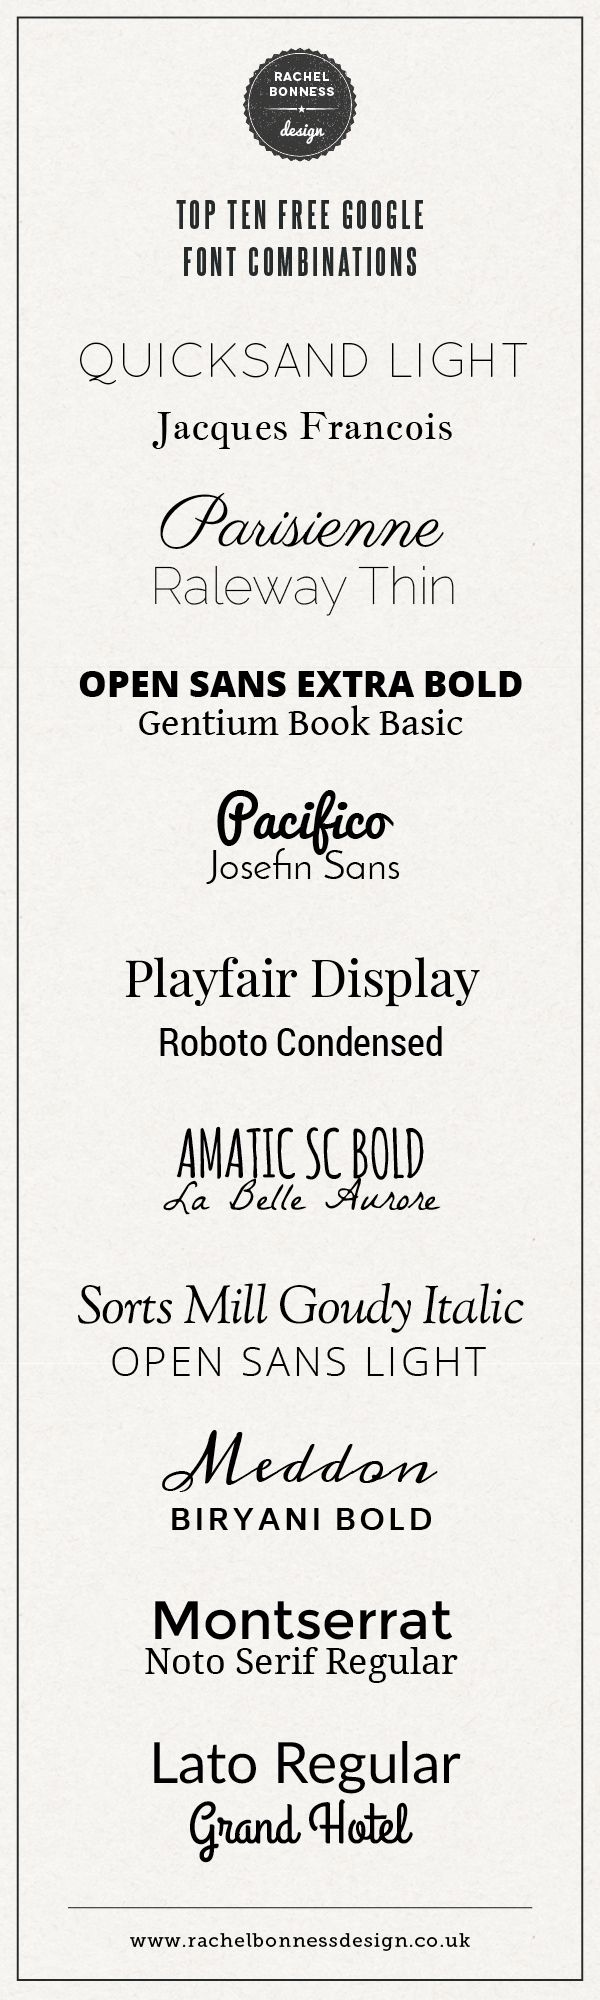 Top Ten Free Google Font Combinations